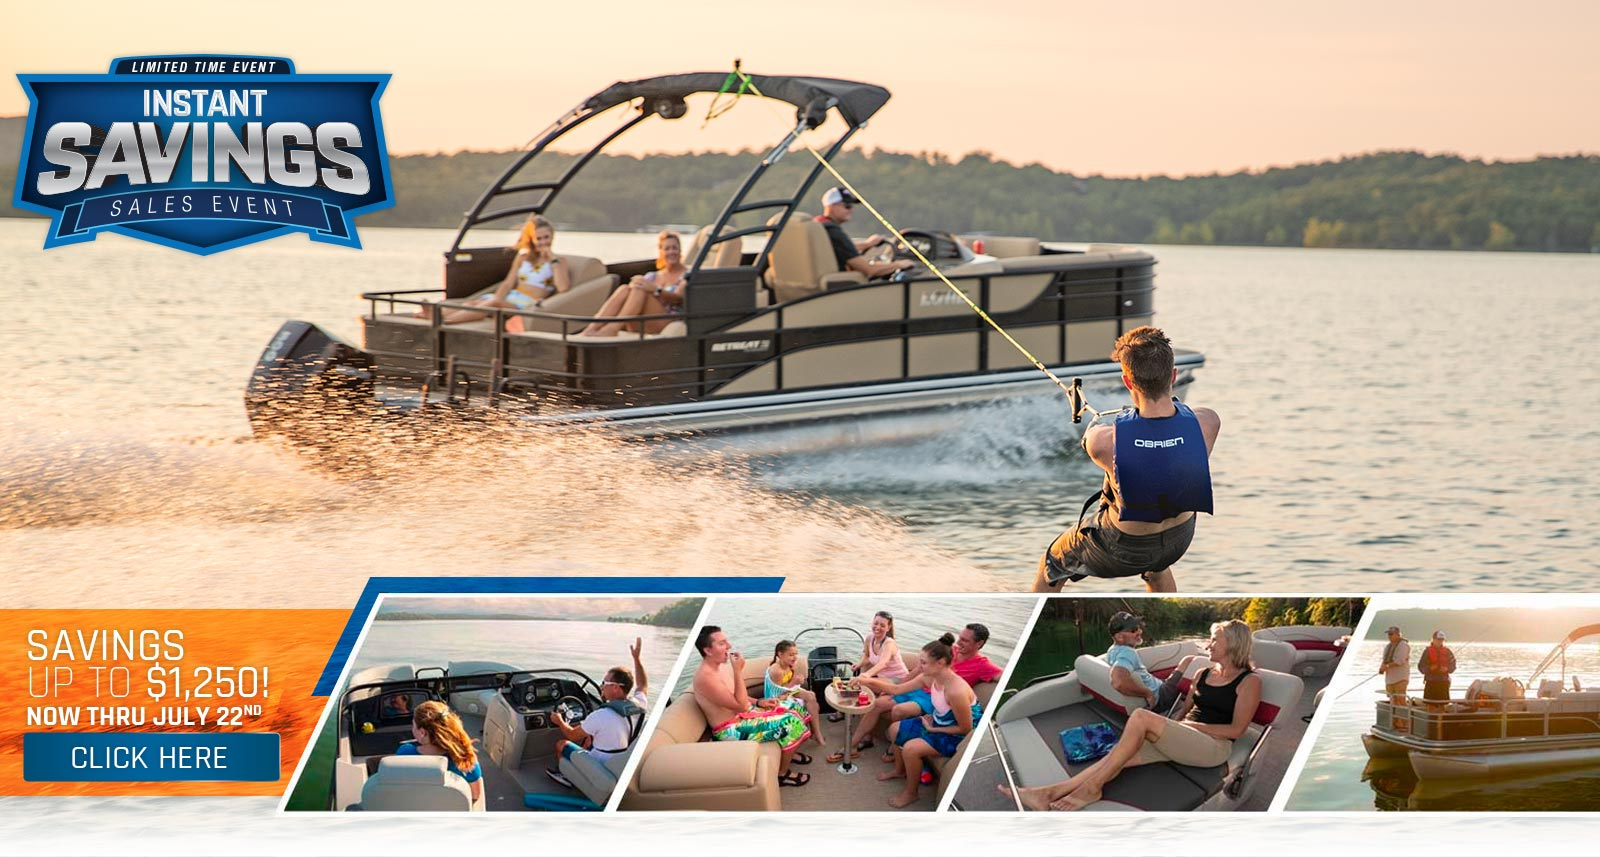 2020 Lowe Boats Instant Savings Offer - Up to $2,250 Off - Expires May 8th